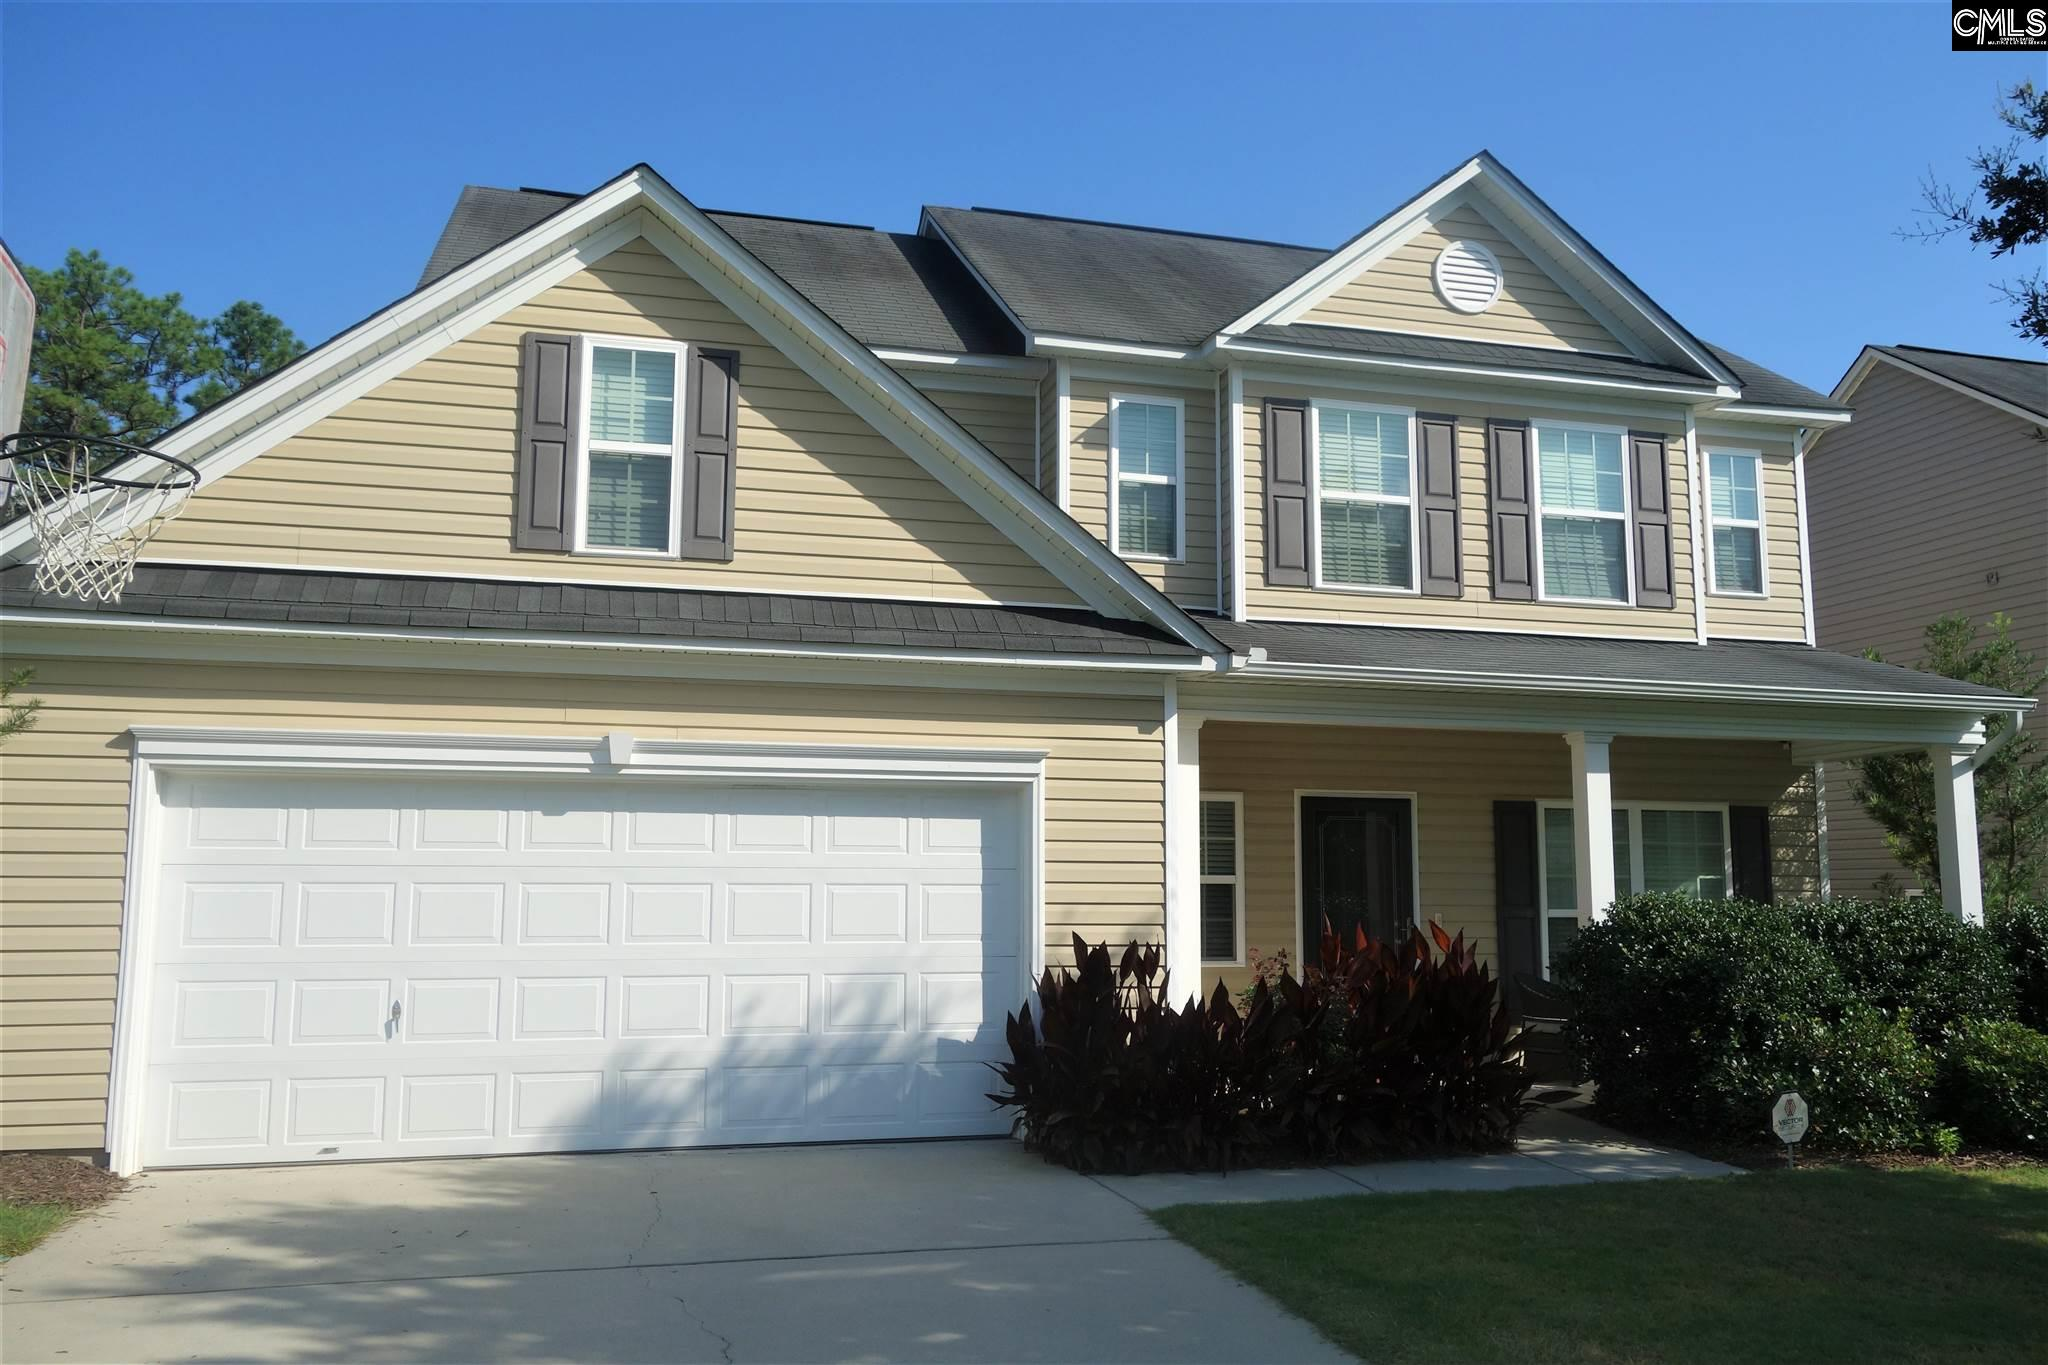 242 Flinchum Lexington, SC 29073